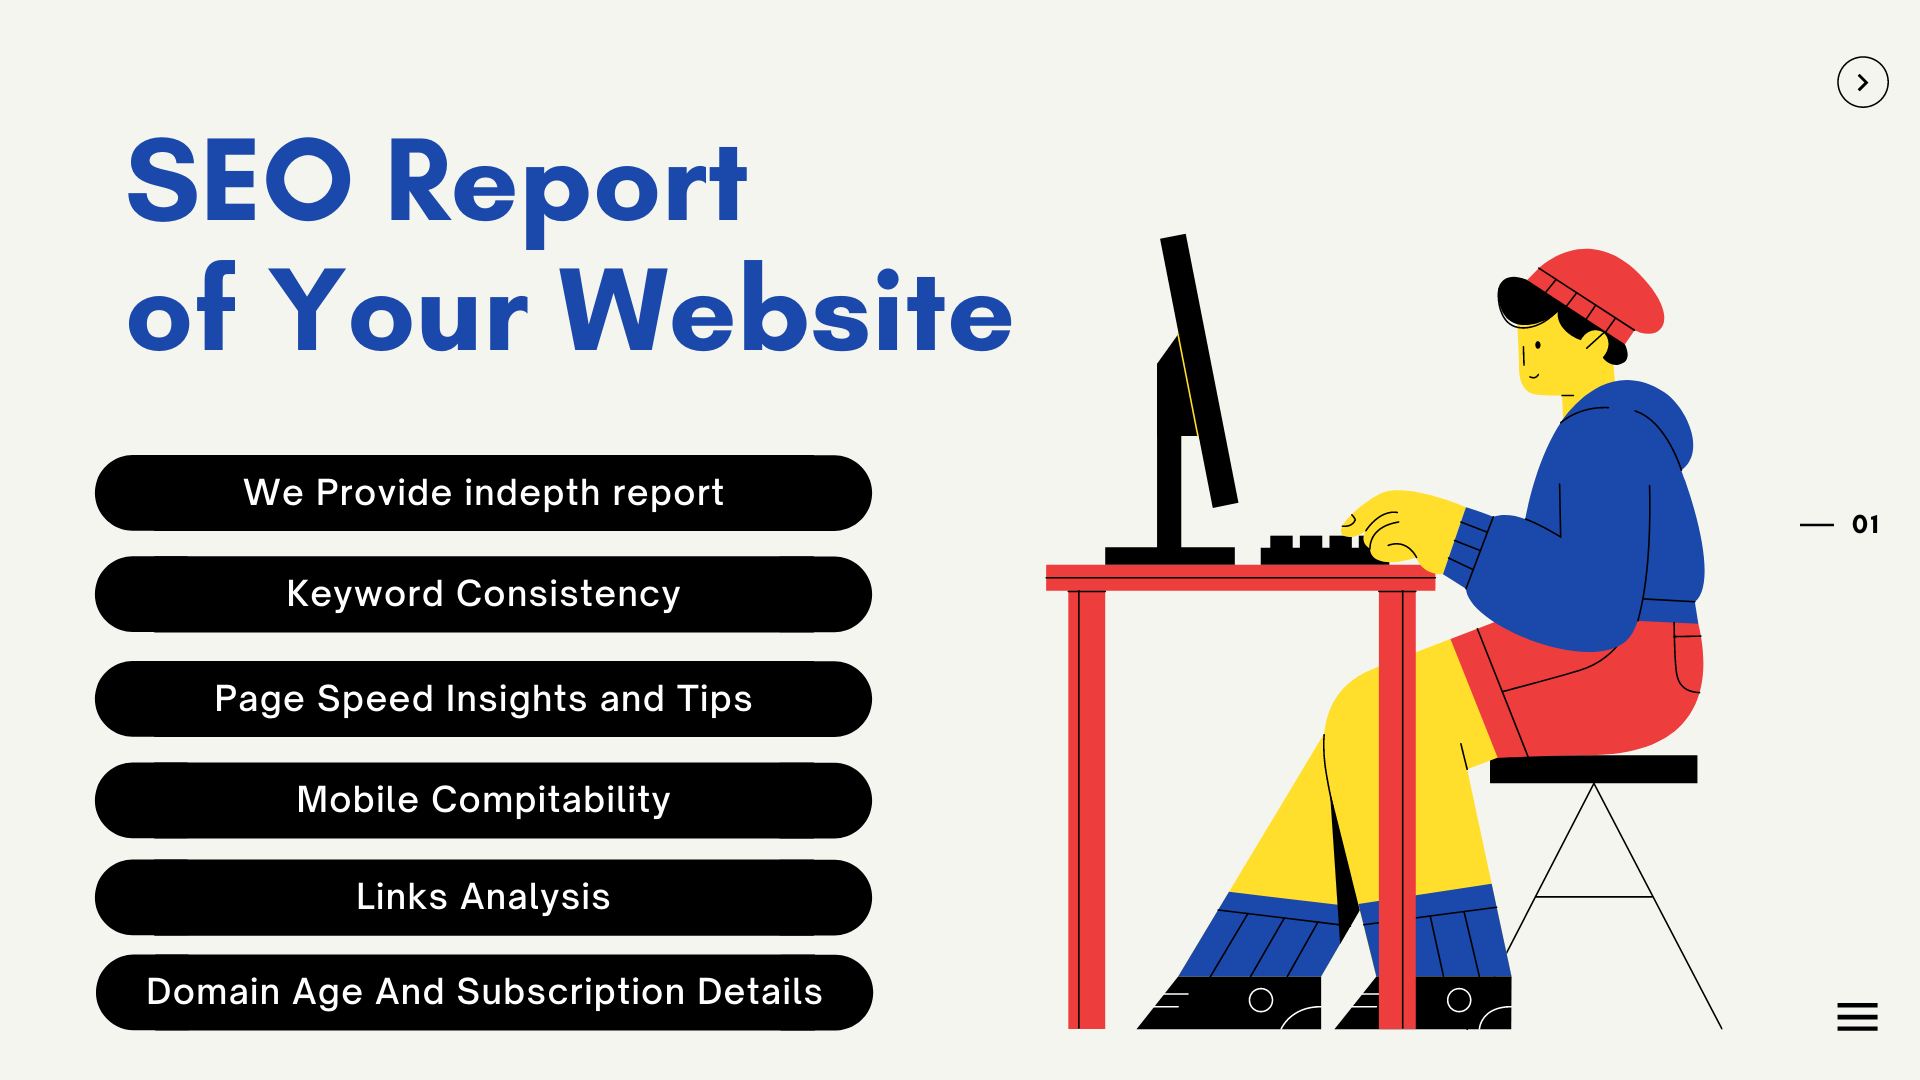 Professional SEO Report For Your Web Site within a Day